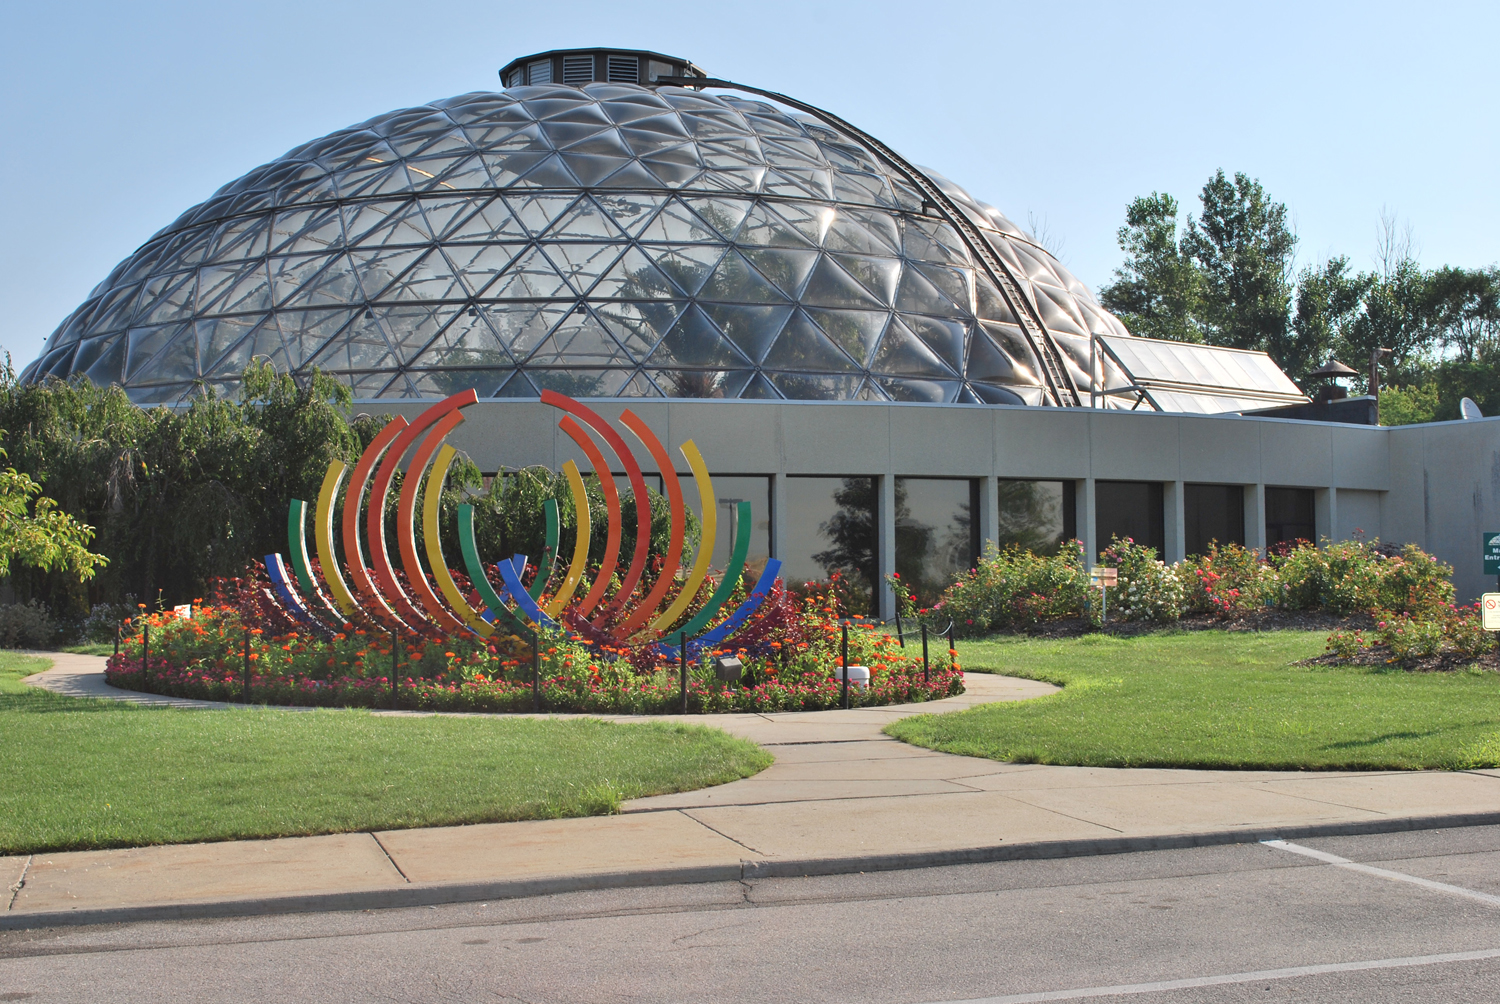 The Greater Des Moines Botanical Garden was built in 1979 but its history dates back 1929.